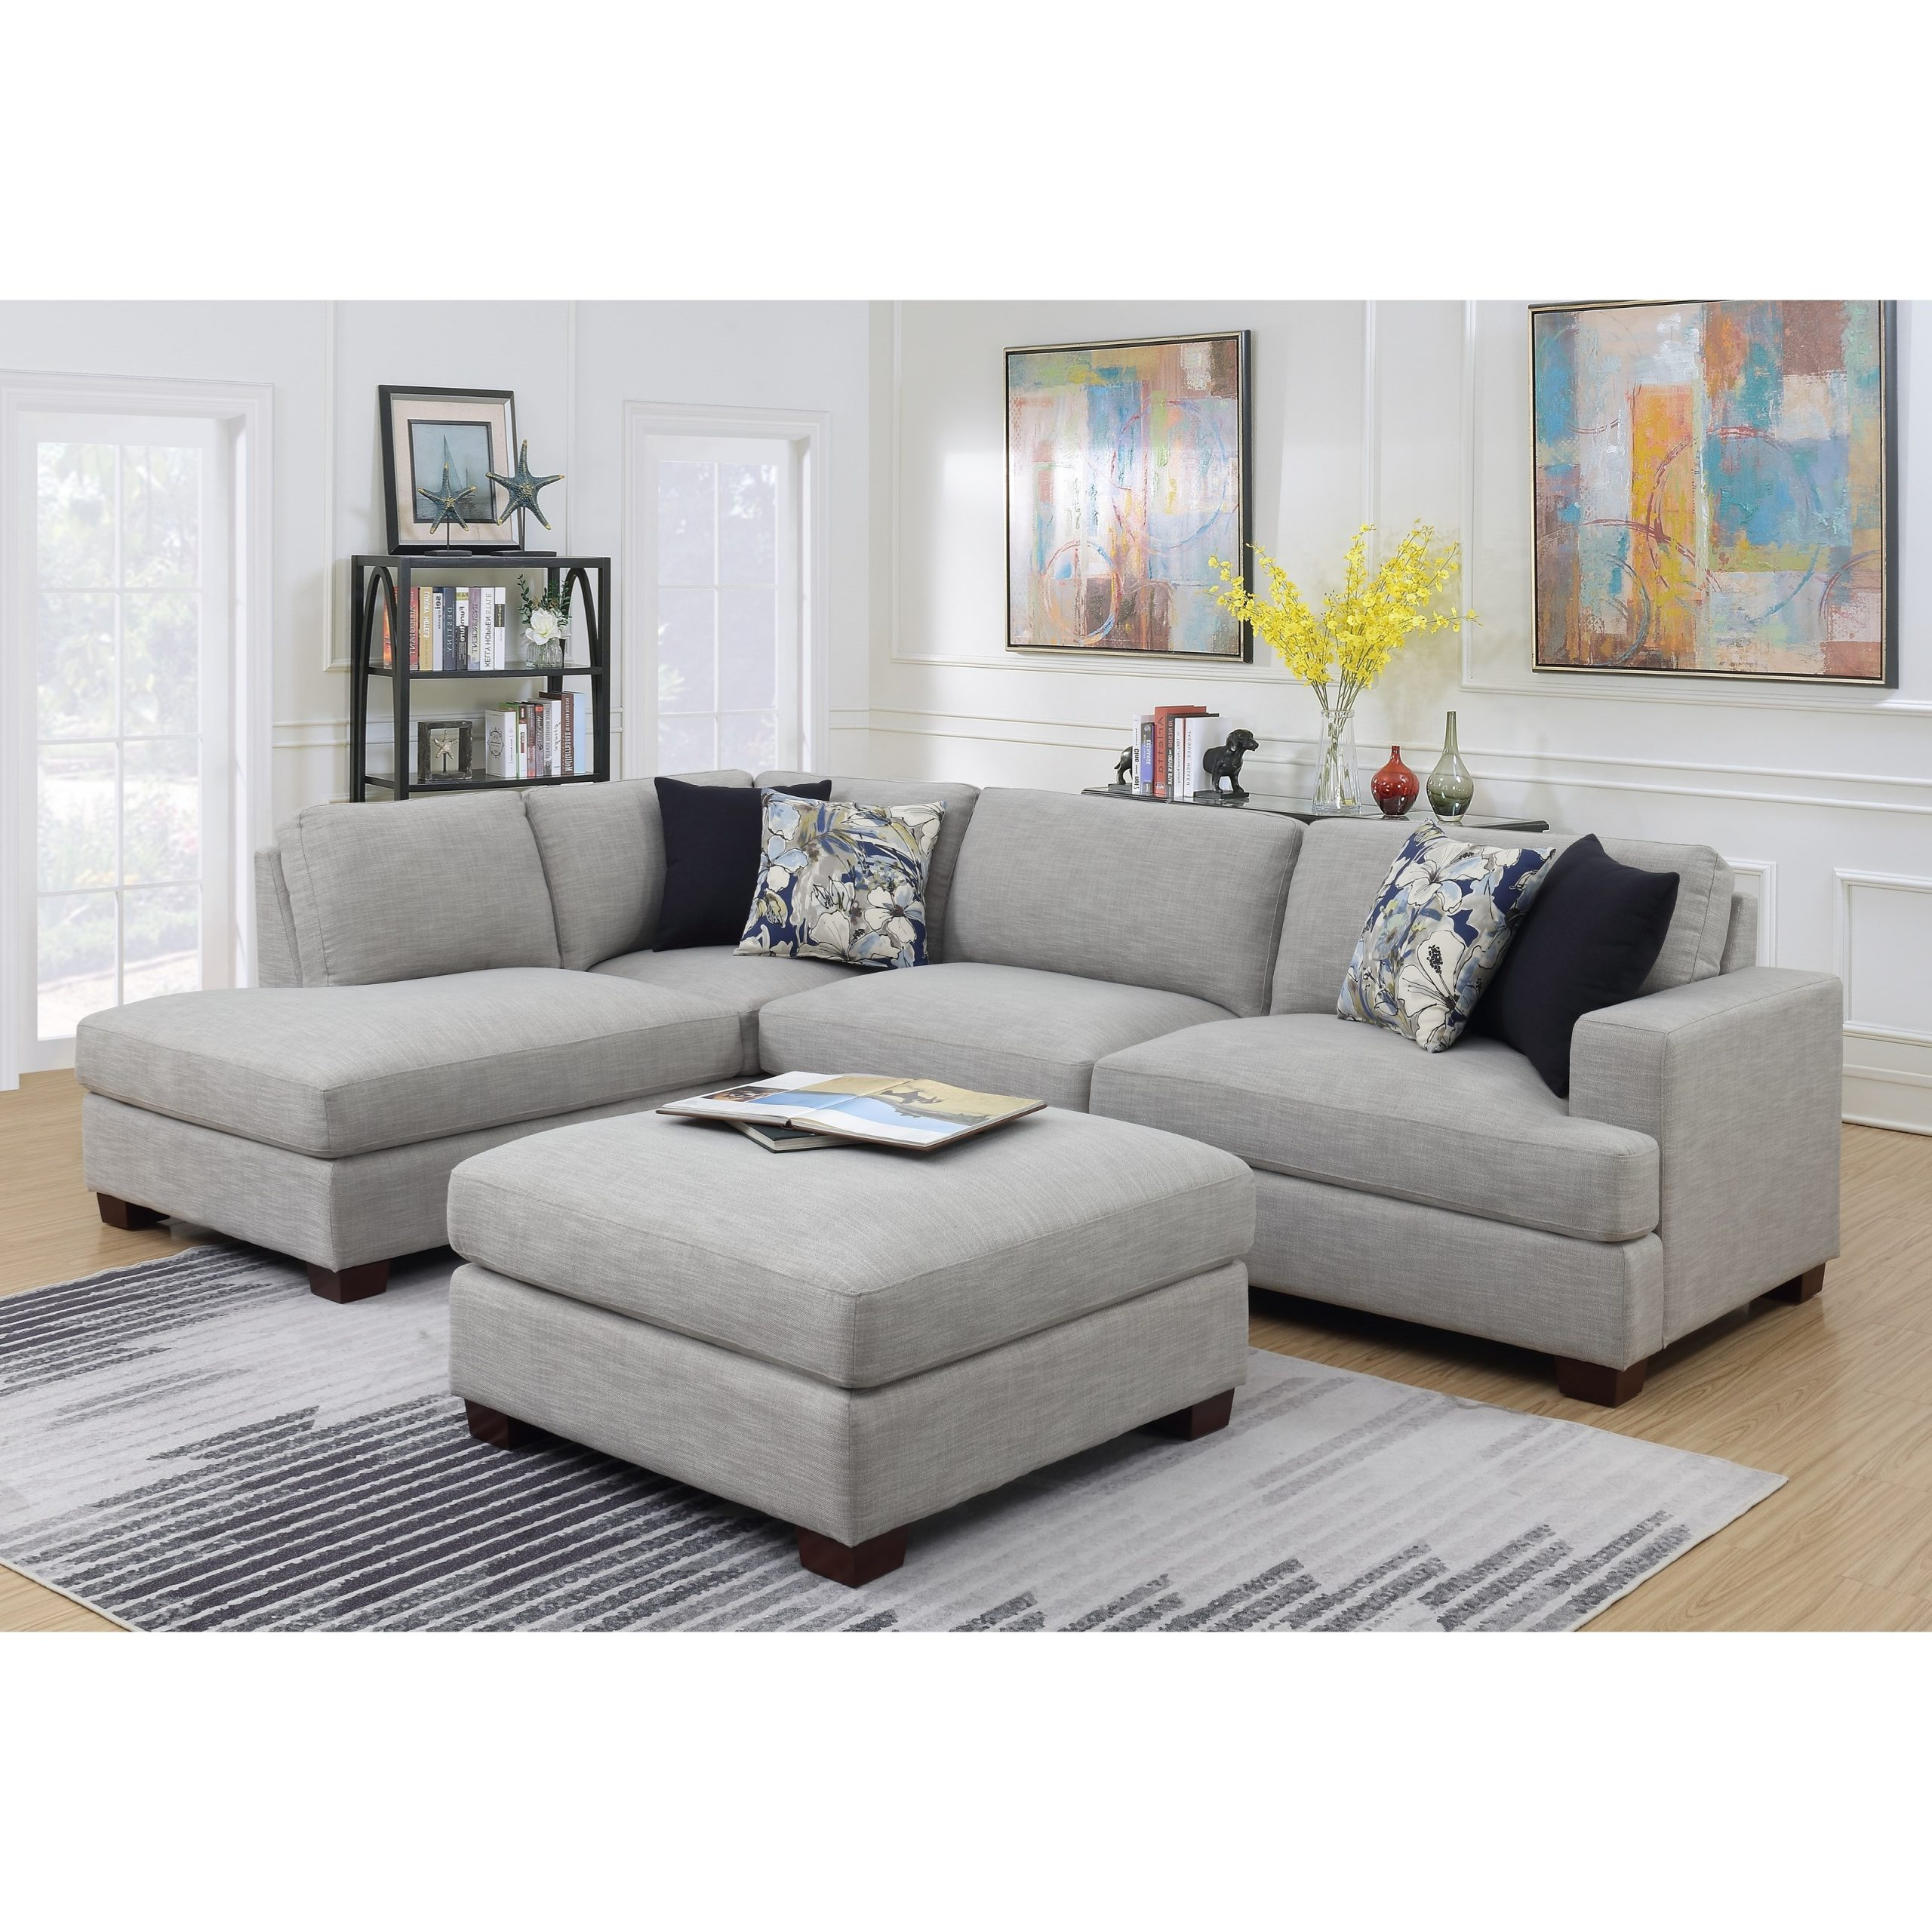 2pc Burland Contemporary Chaise Sectional Sofas Pertaining To Most Recently Released Emerald Vernon Contemporary 2 Piece Sectional Sofa With (View 1 of 20)